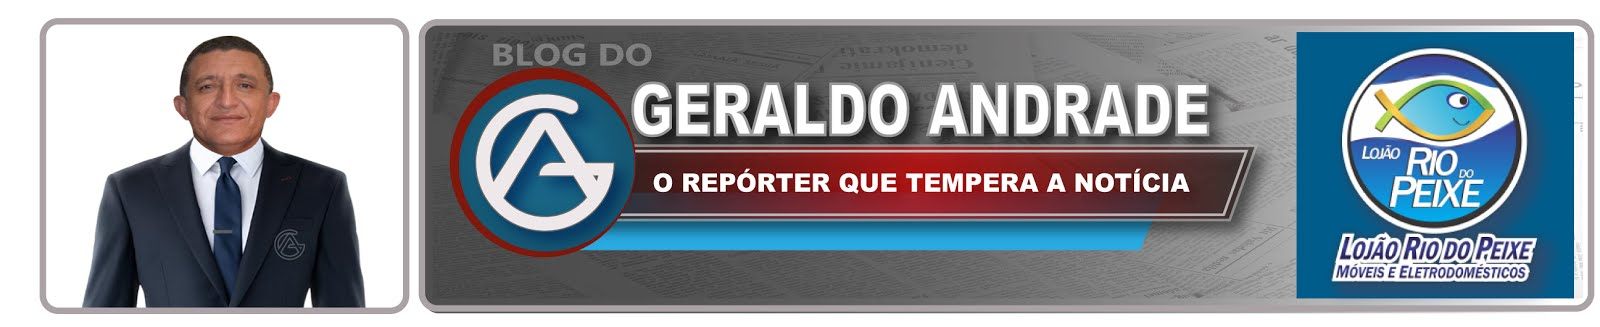 BLOG DO GERALDO ANDRADE